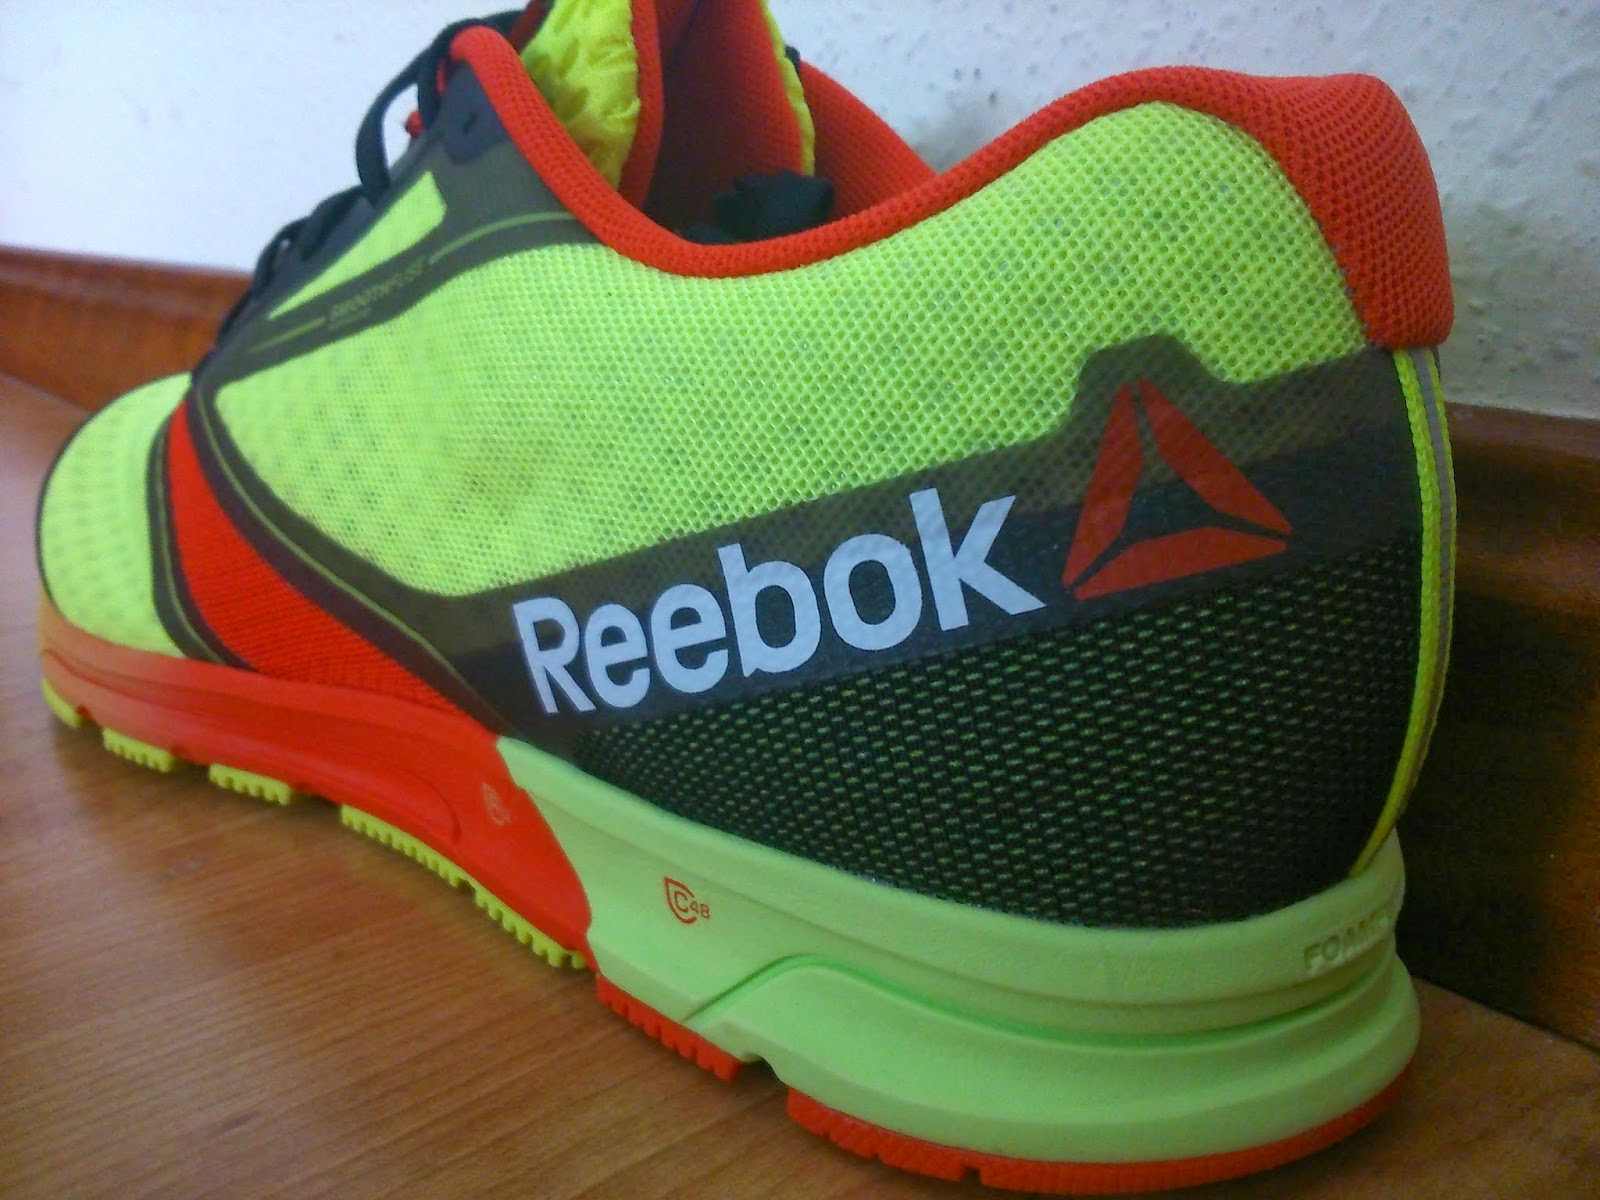 Reebok One Lite shoes running upper